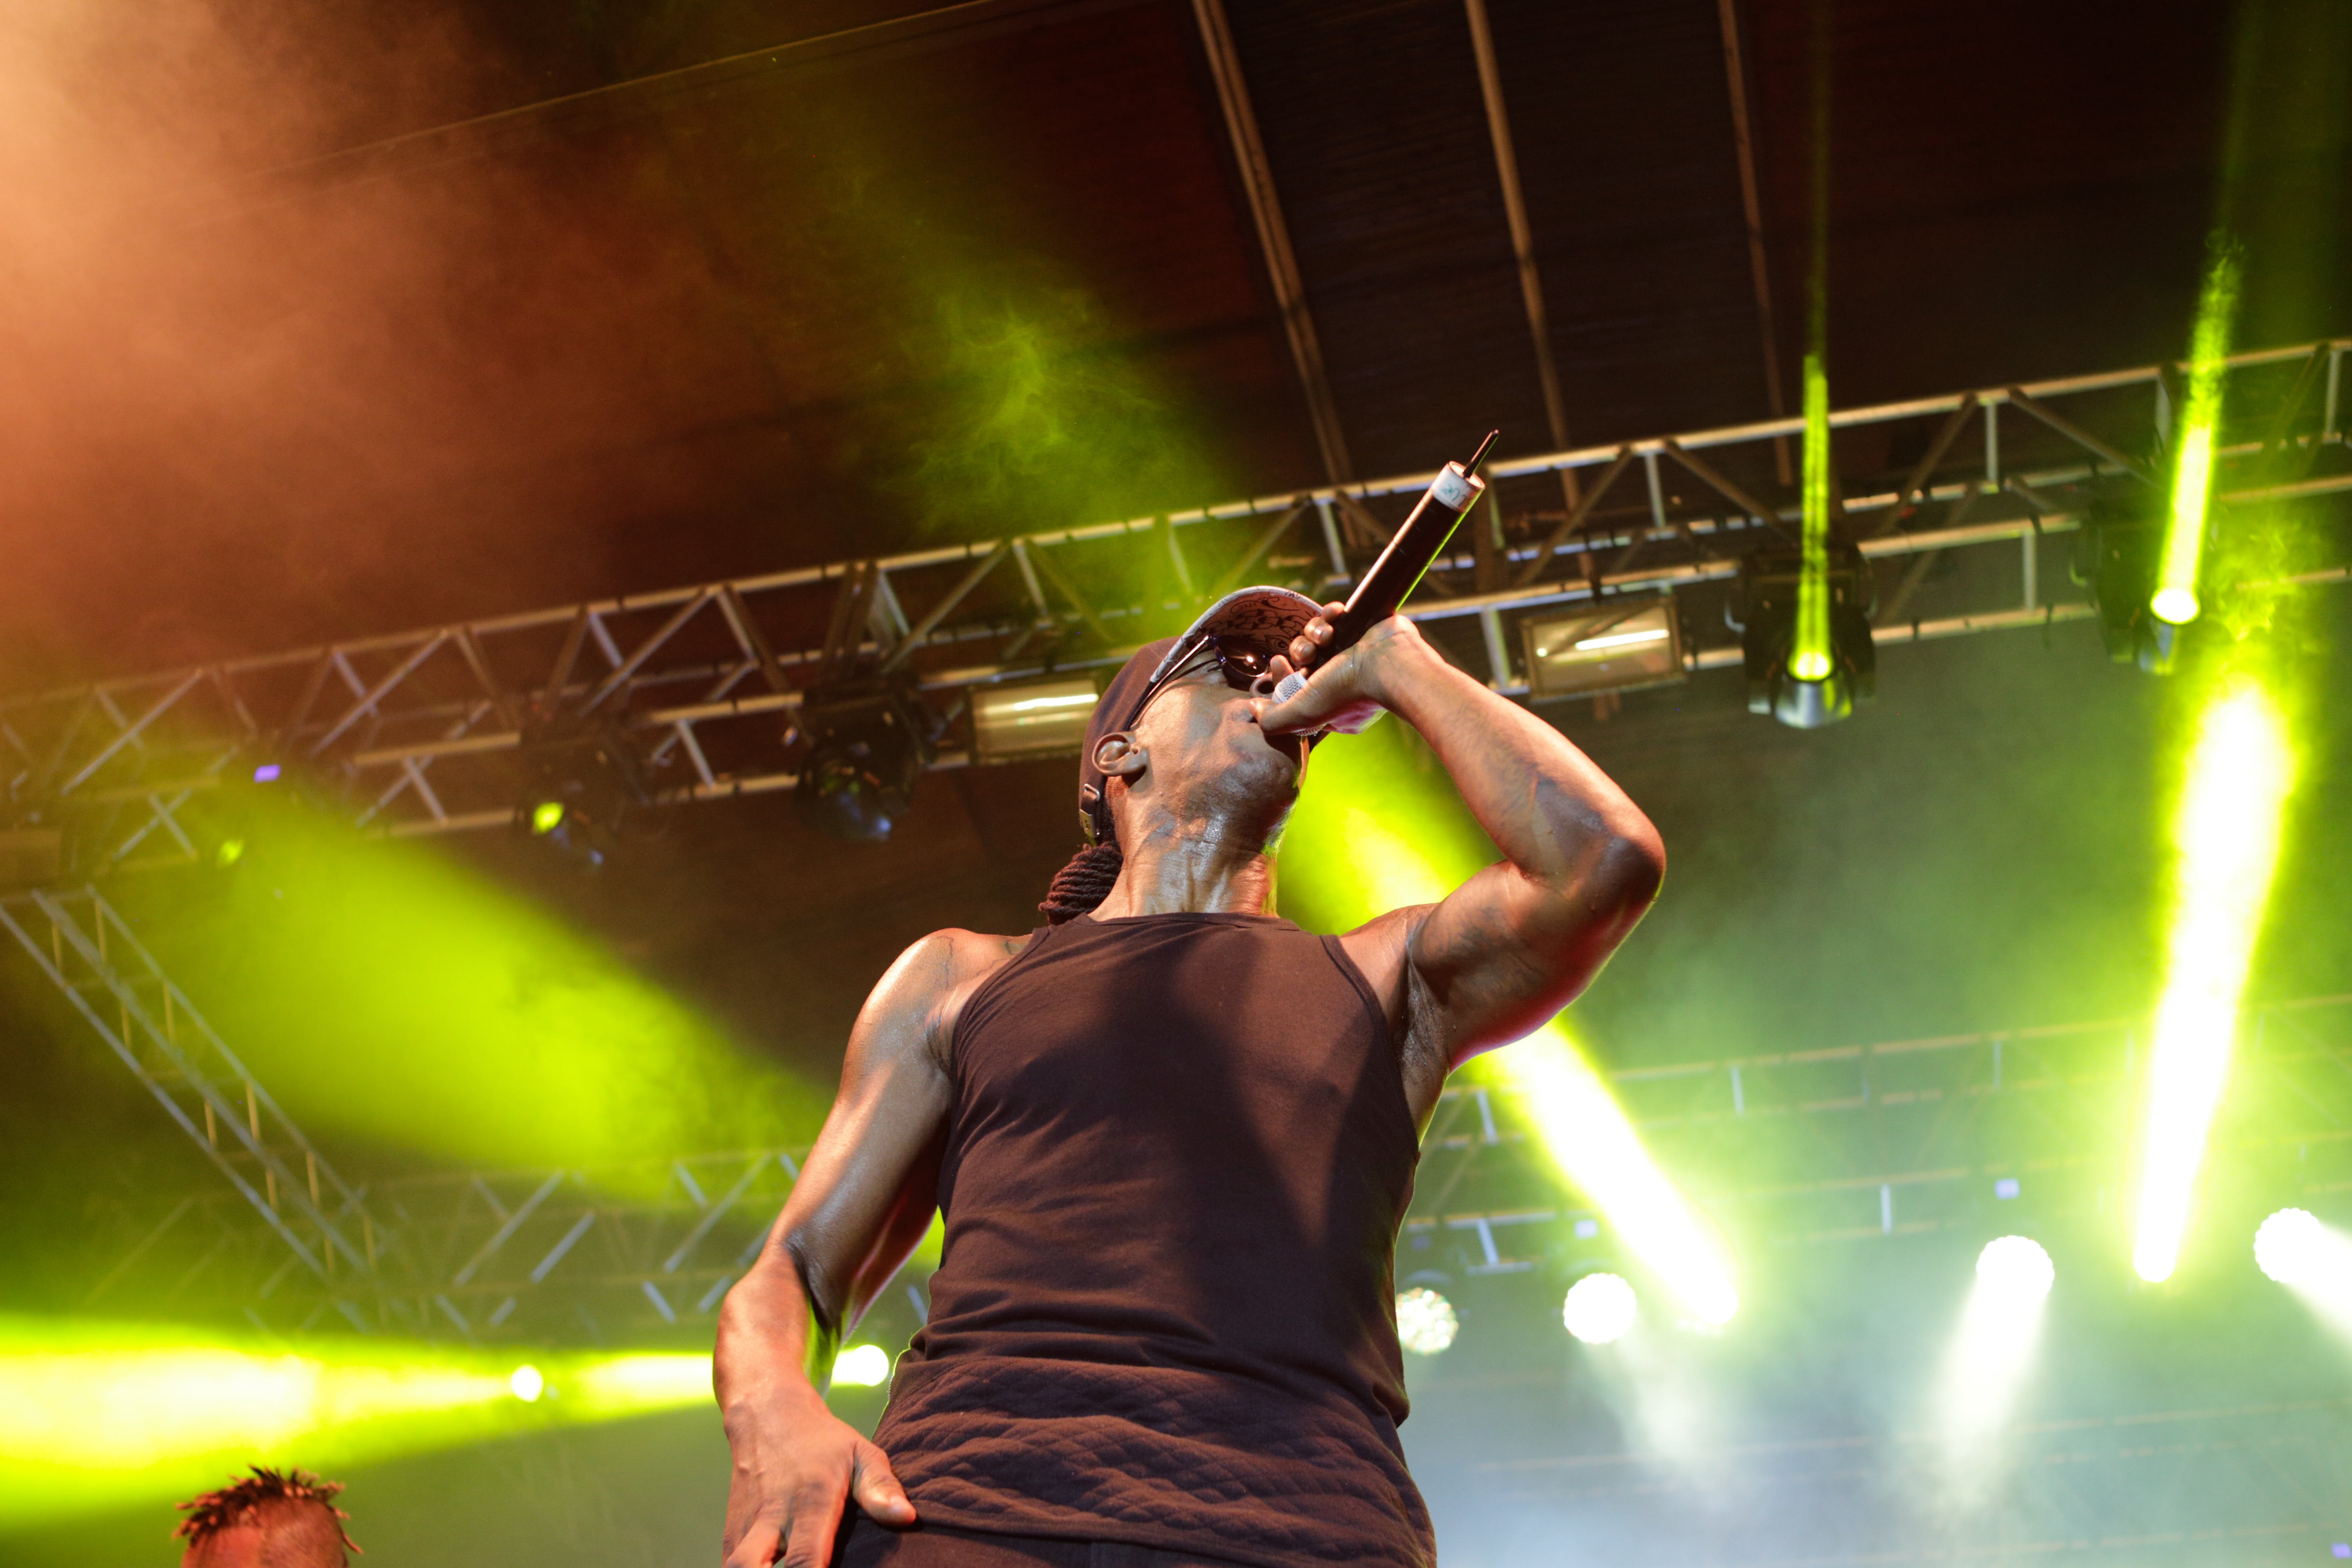 Man Wearing Black Tank Top Using Microphone on a Concert